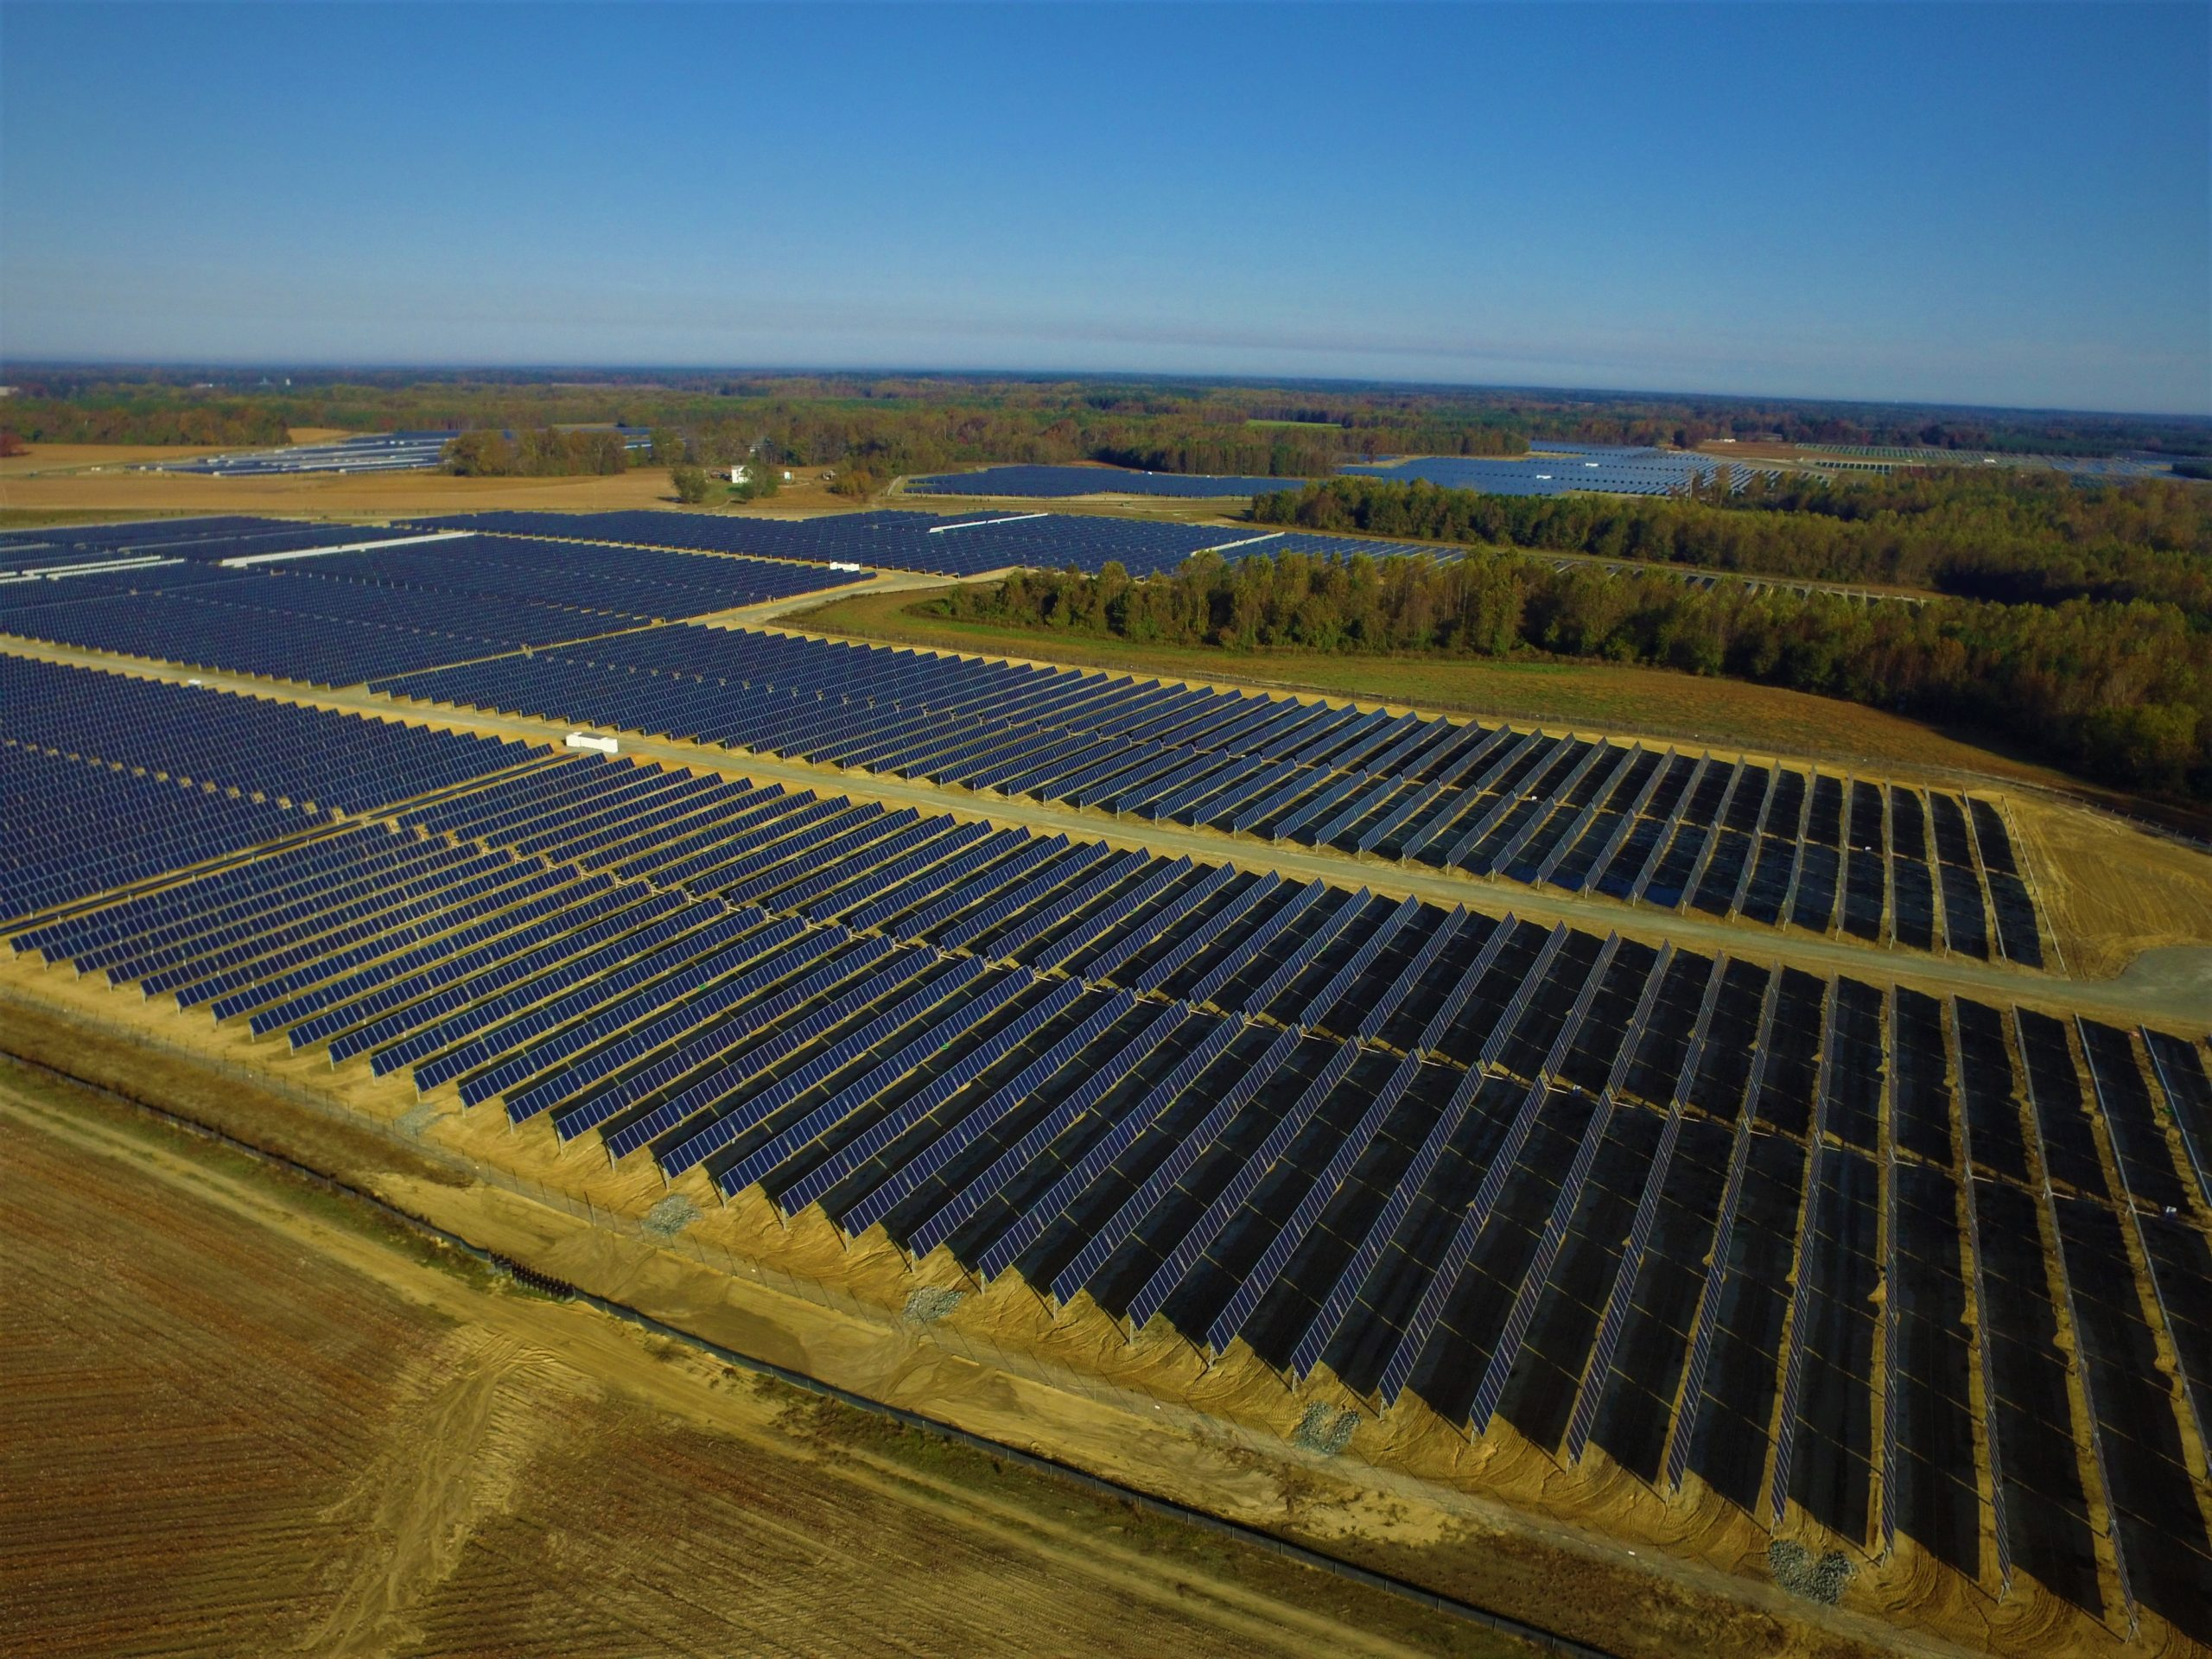 One of Amazon's existing large-scale solar facilities in Virginia.